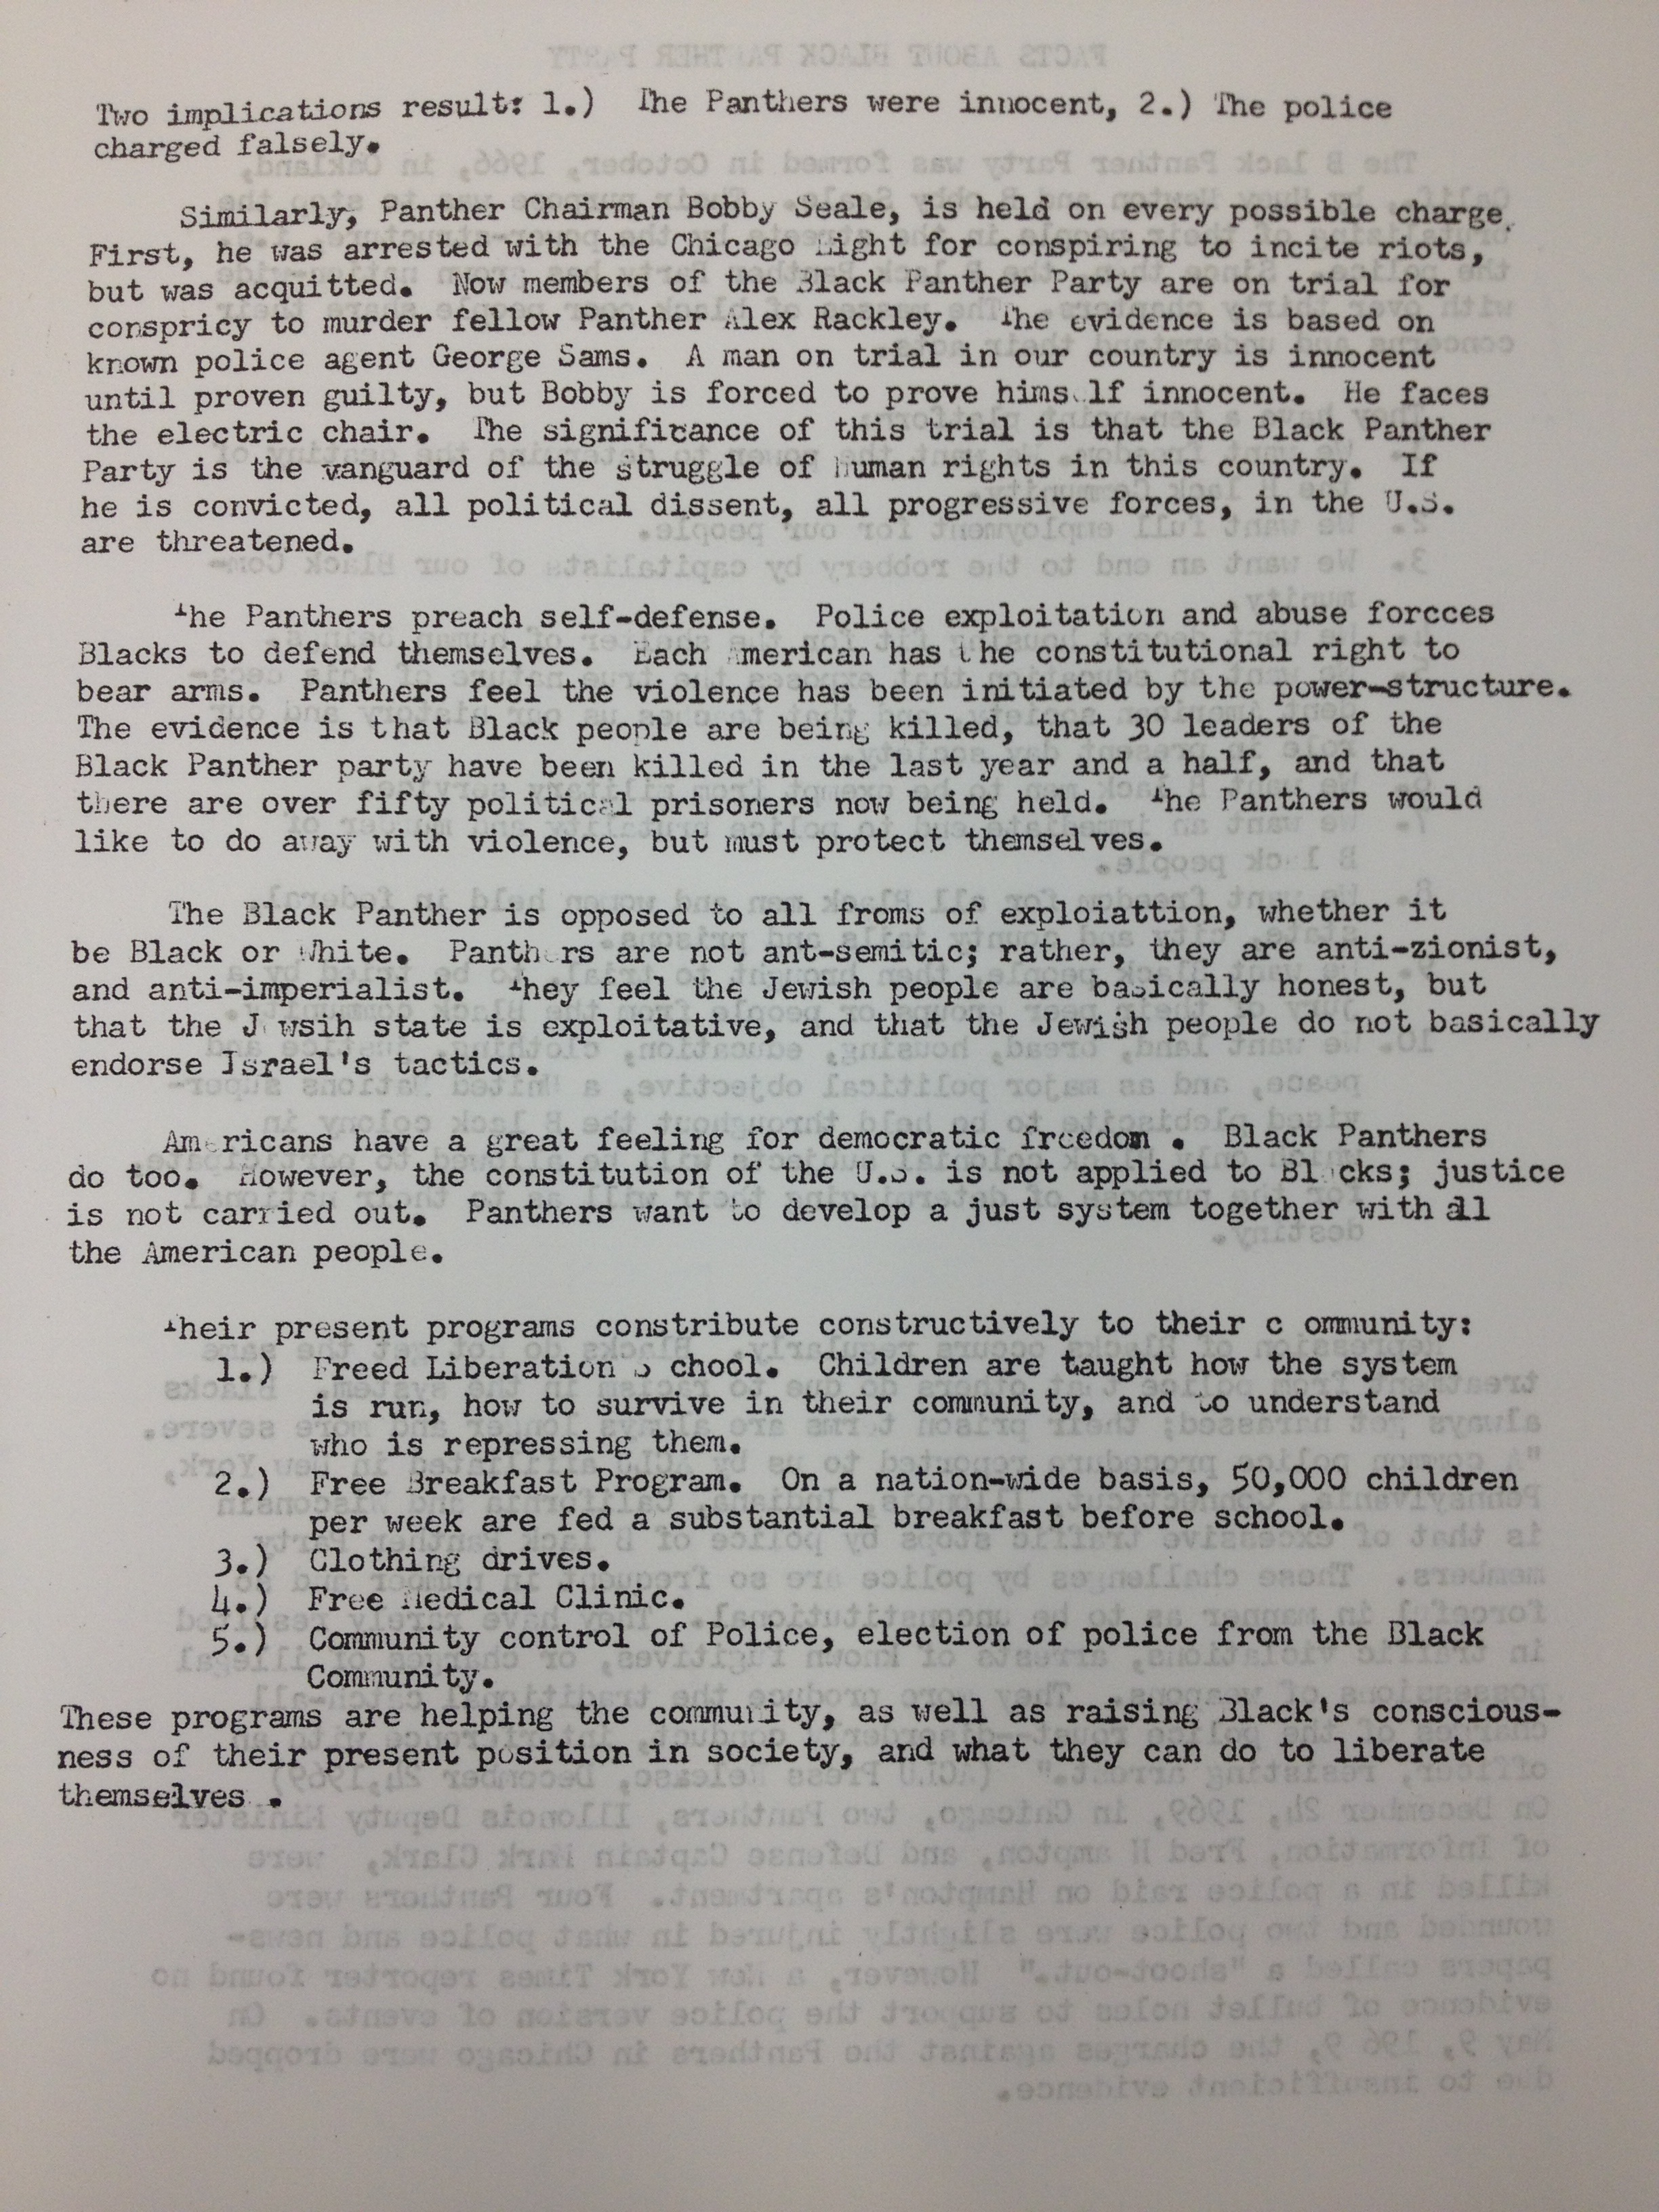 Facts About The Black Panthers (Unknown Source, Possibly Gordon Hall)